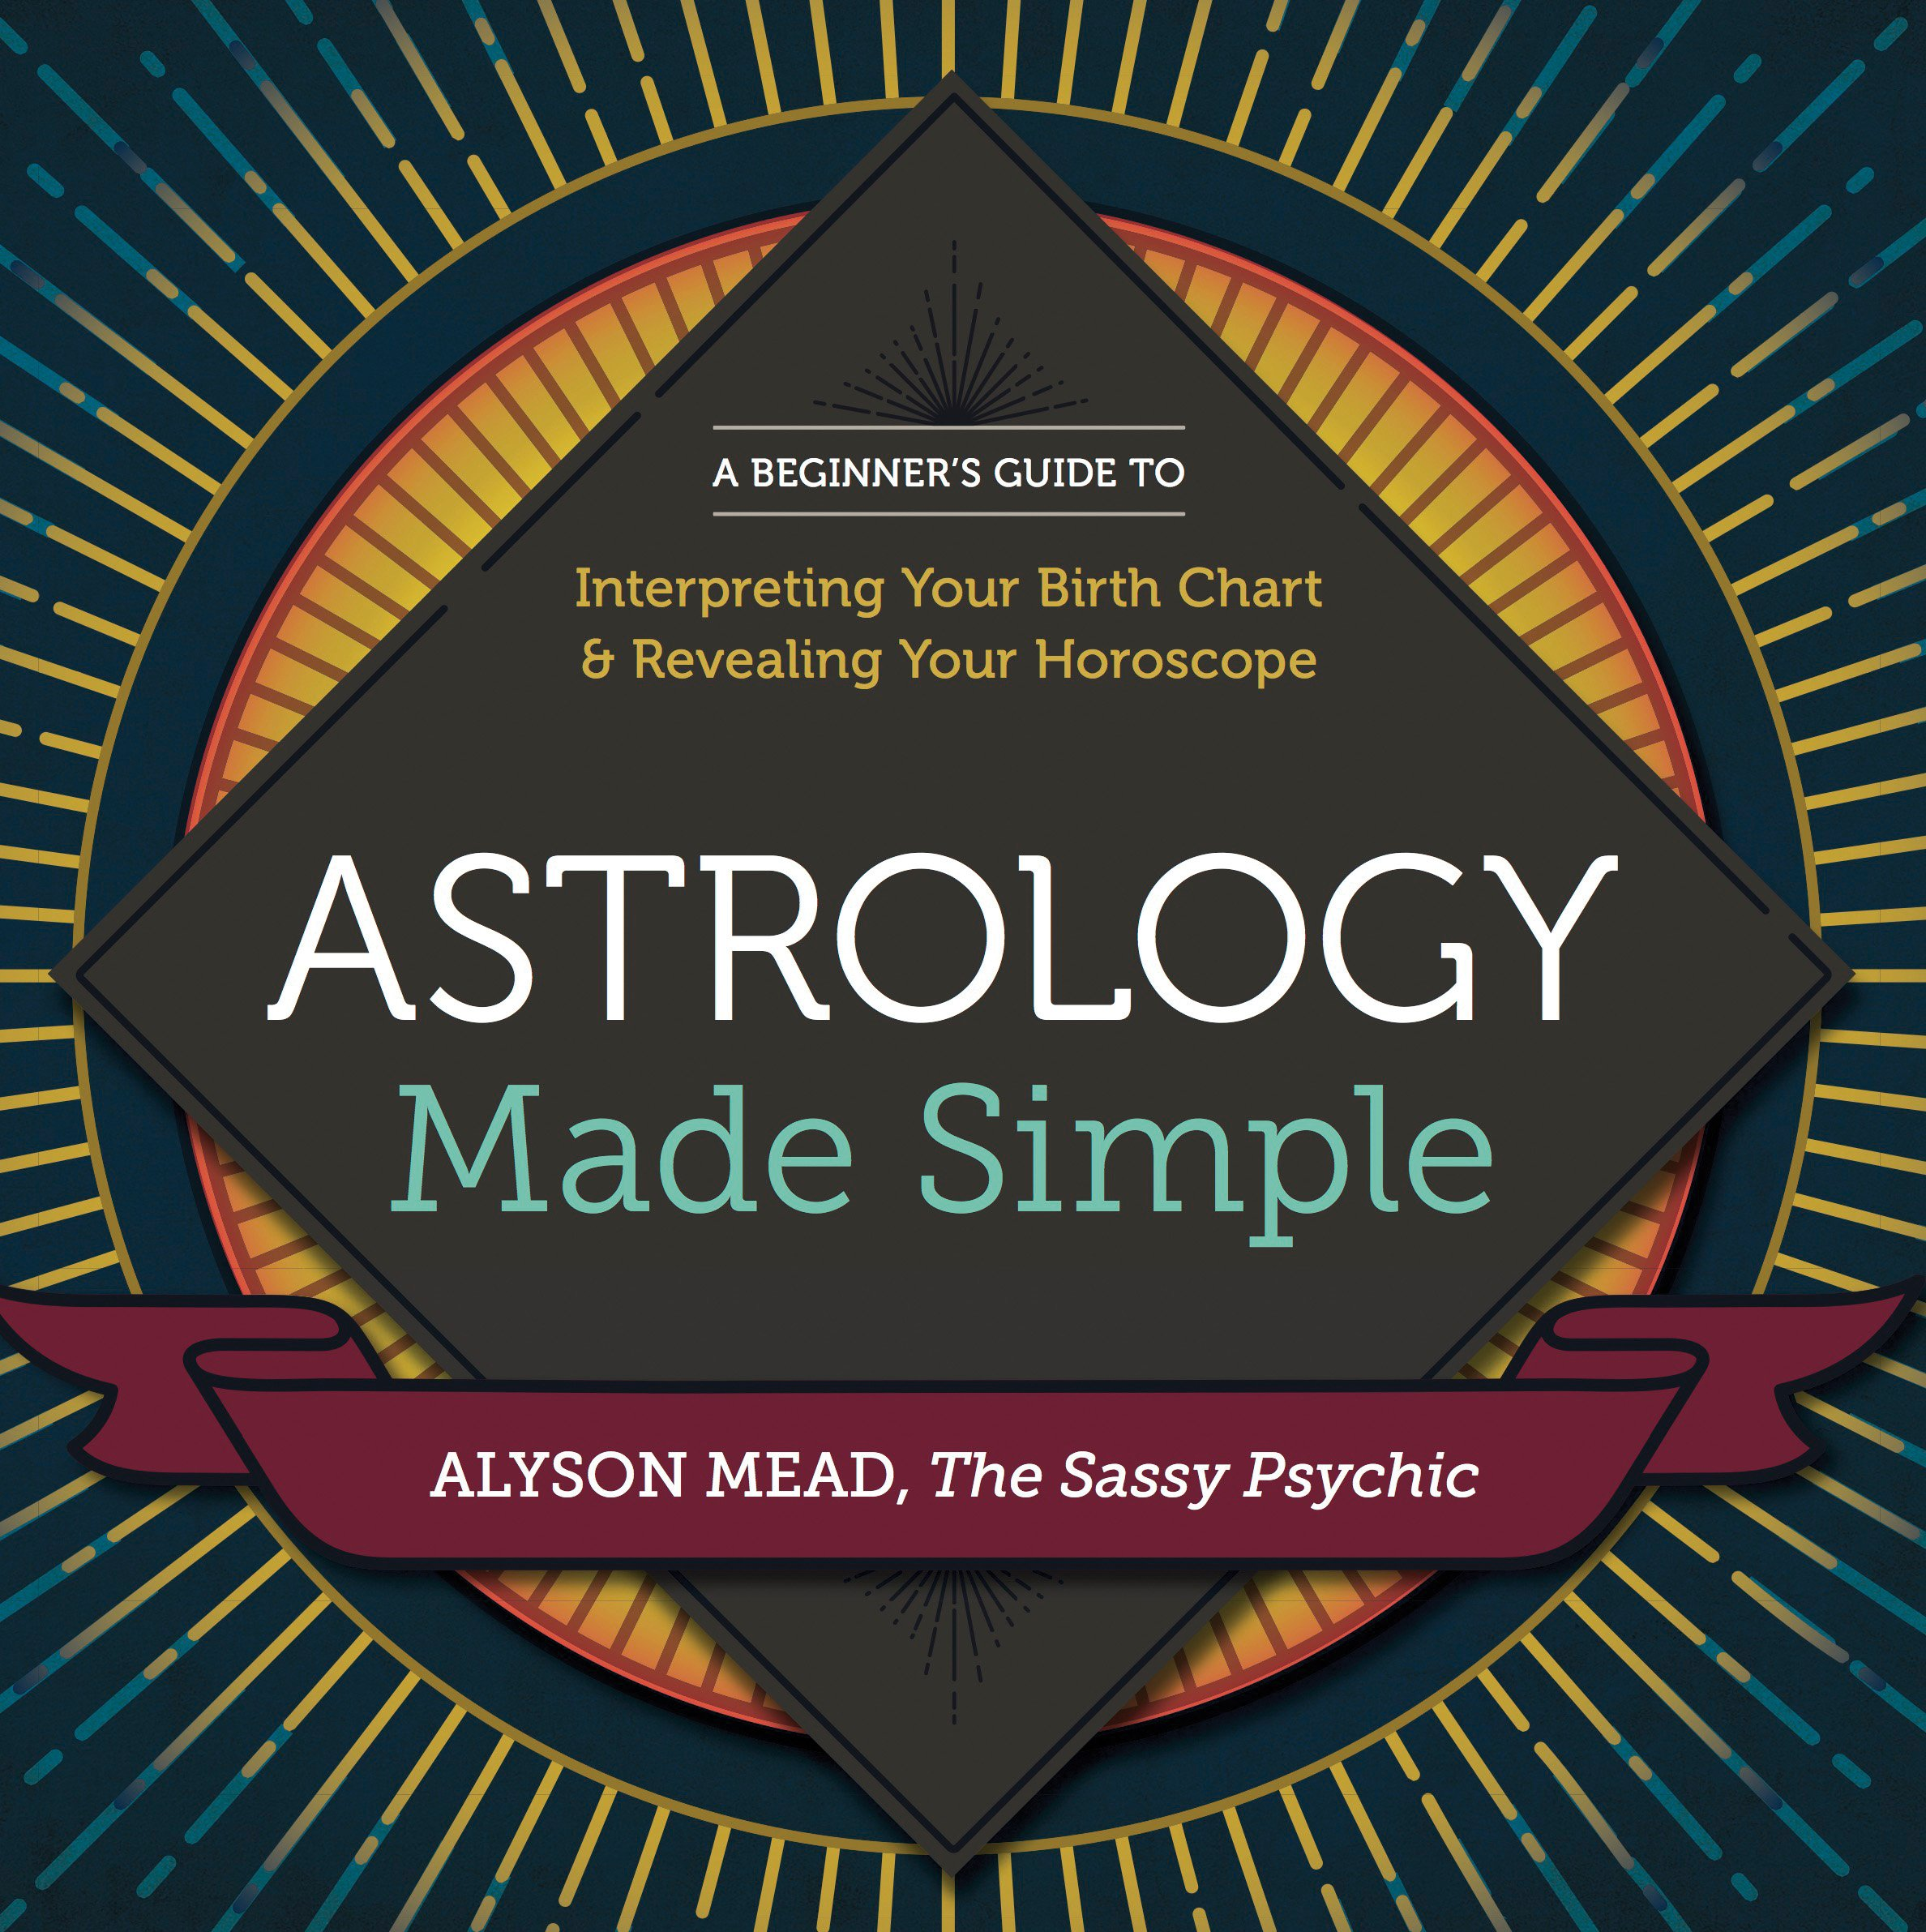 Astrology made simple a beginners guide to interpreting your astrology made simple a beginners guide to interpreting your birth chart and revealing your horoscope alyson mead 9781623156534 amazon books nvjuhfo Gallery